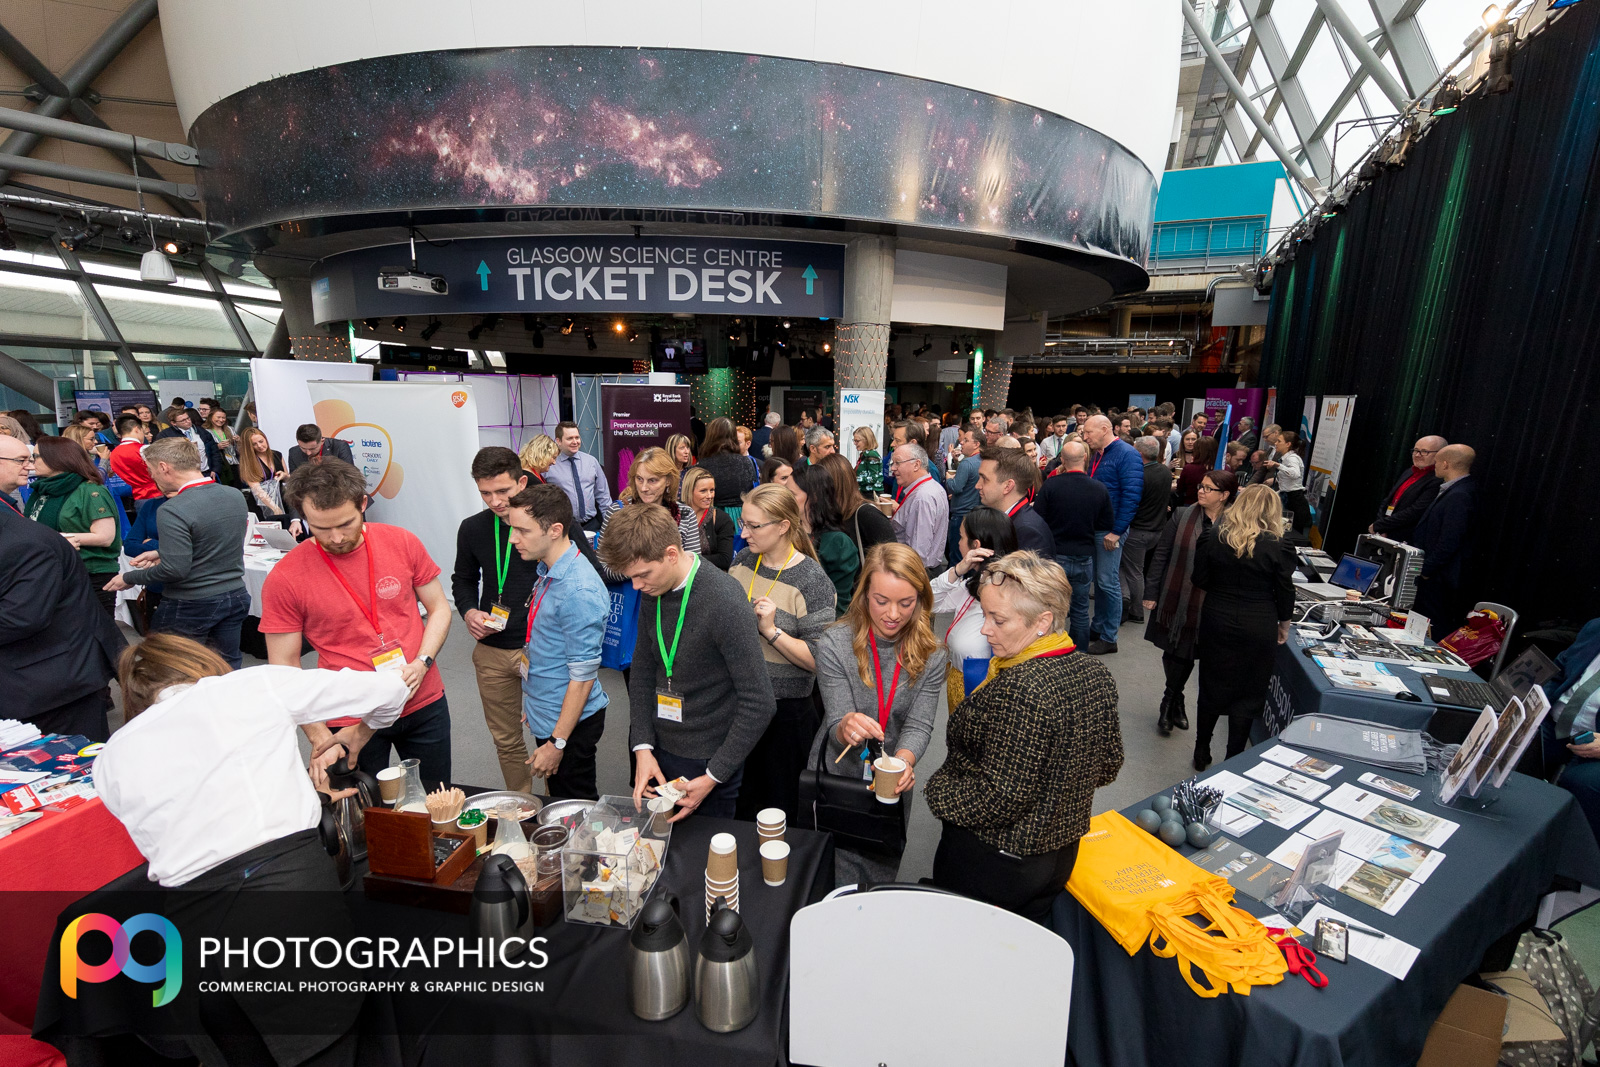 conference-event-PR-photography-science-centre-glasgow-edinburgh-scotland-12.jpg